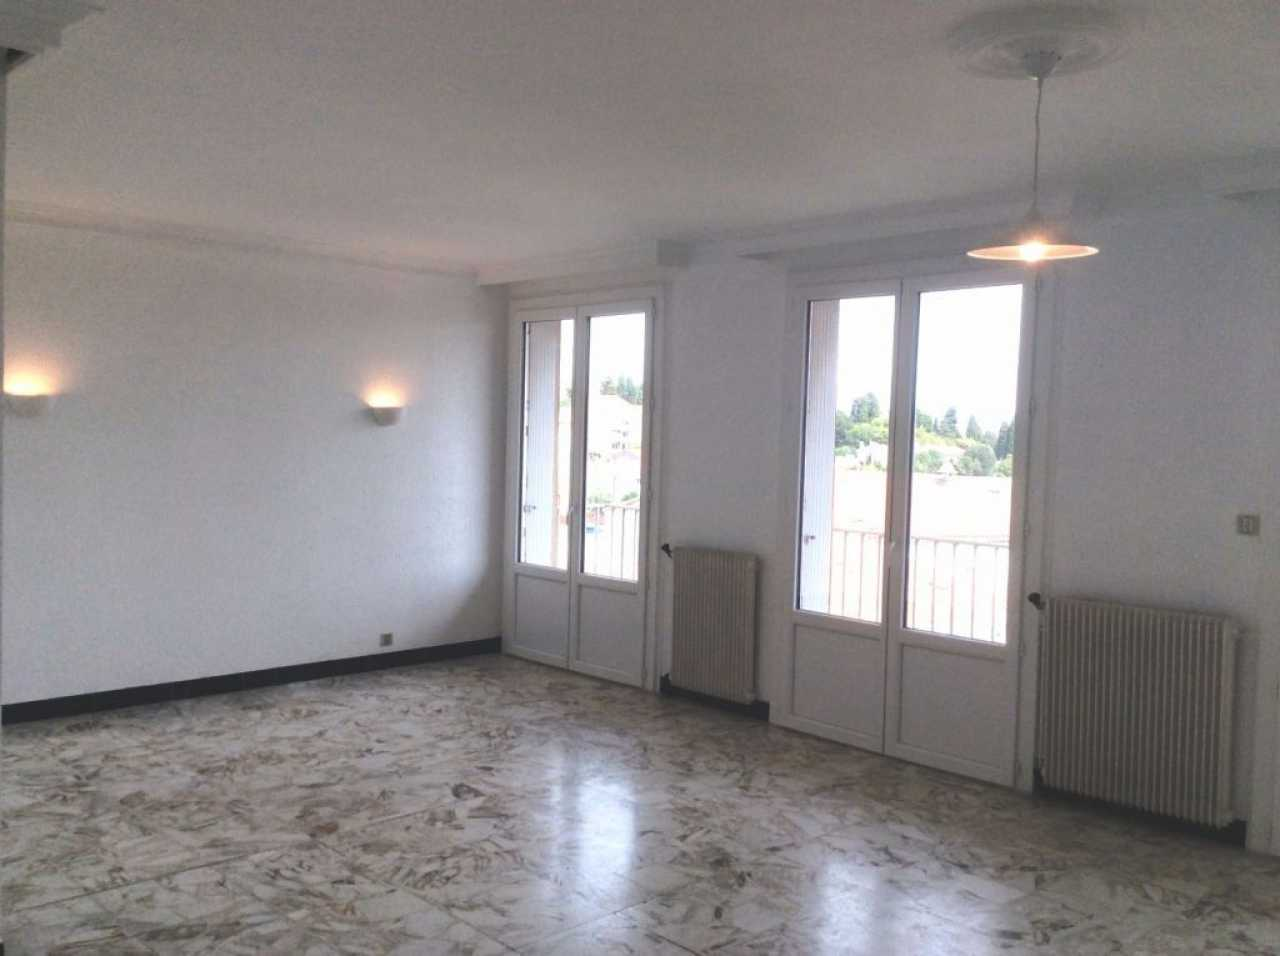 Apartment CARCASSONNE | 547 € / month